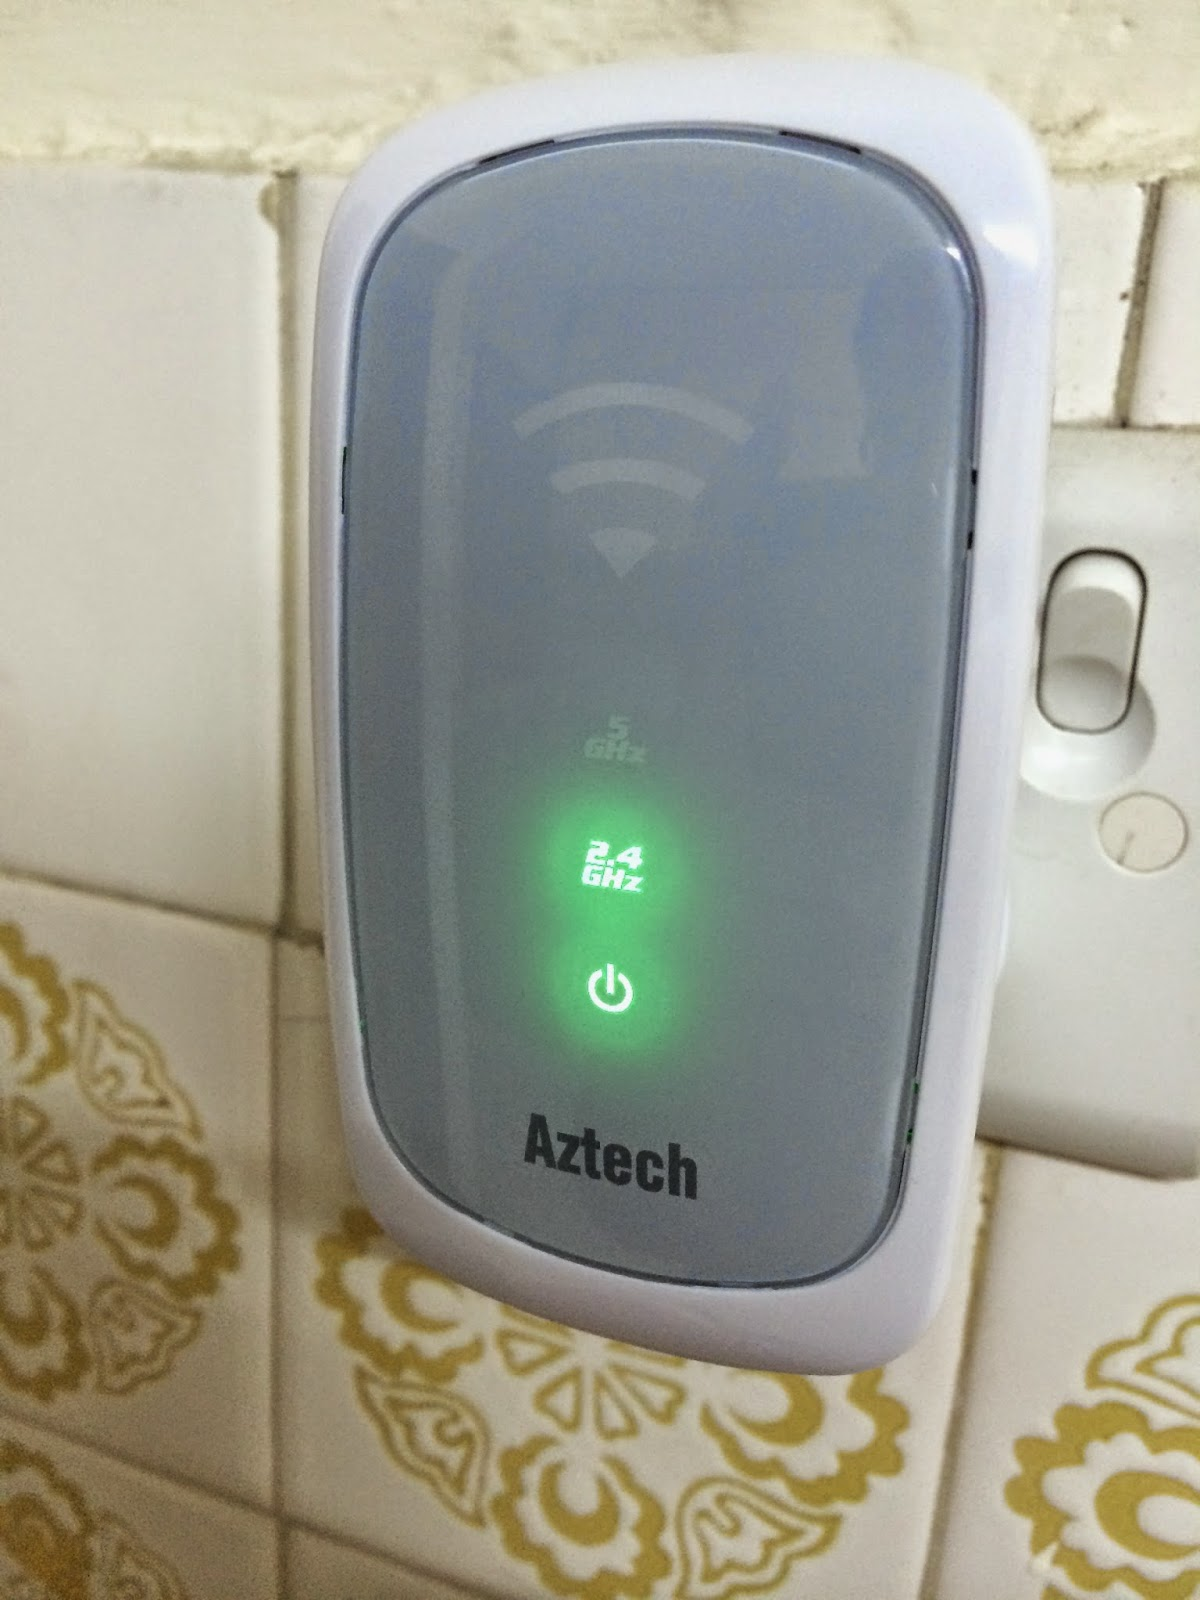 Unboxing & Review: Aztech WL580E Repeater